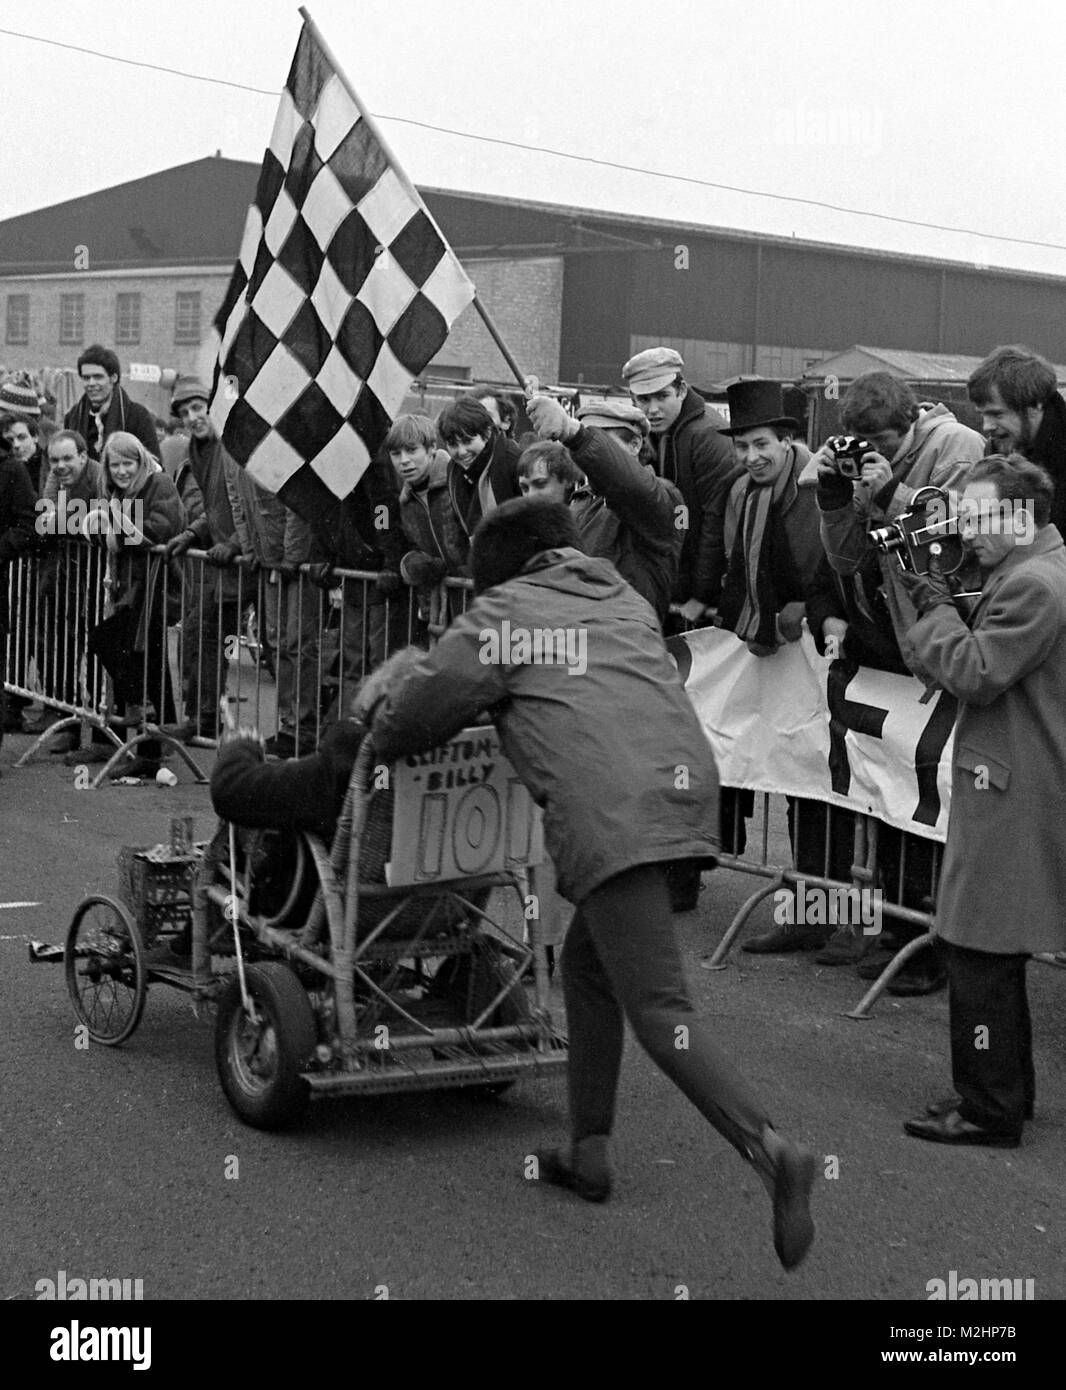 Cinema newsreel cameraman with wind-up film camera captures the final stages of the 1968 National 24-hour Pedal - Stock Image